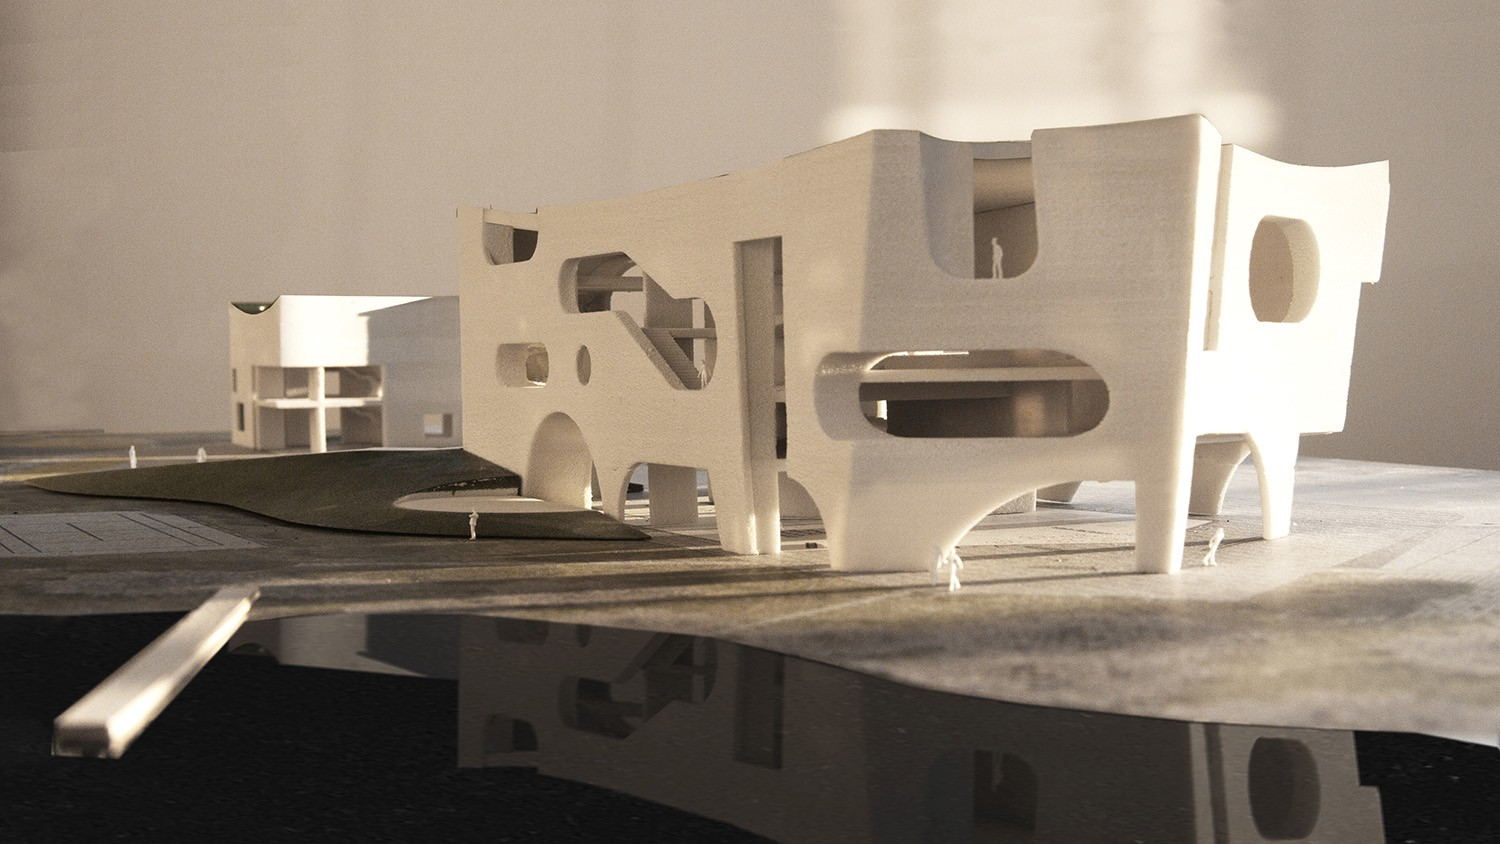 https://s3.us-east-2.amazonaws.com/steven-holl/uploads/projects/project-images/StevenHollArchitects_COFCO_IMG_3244_WH.jpg